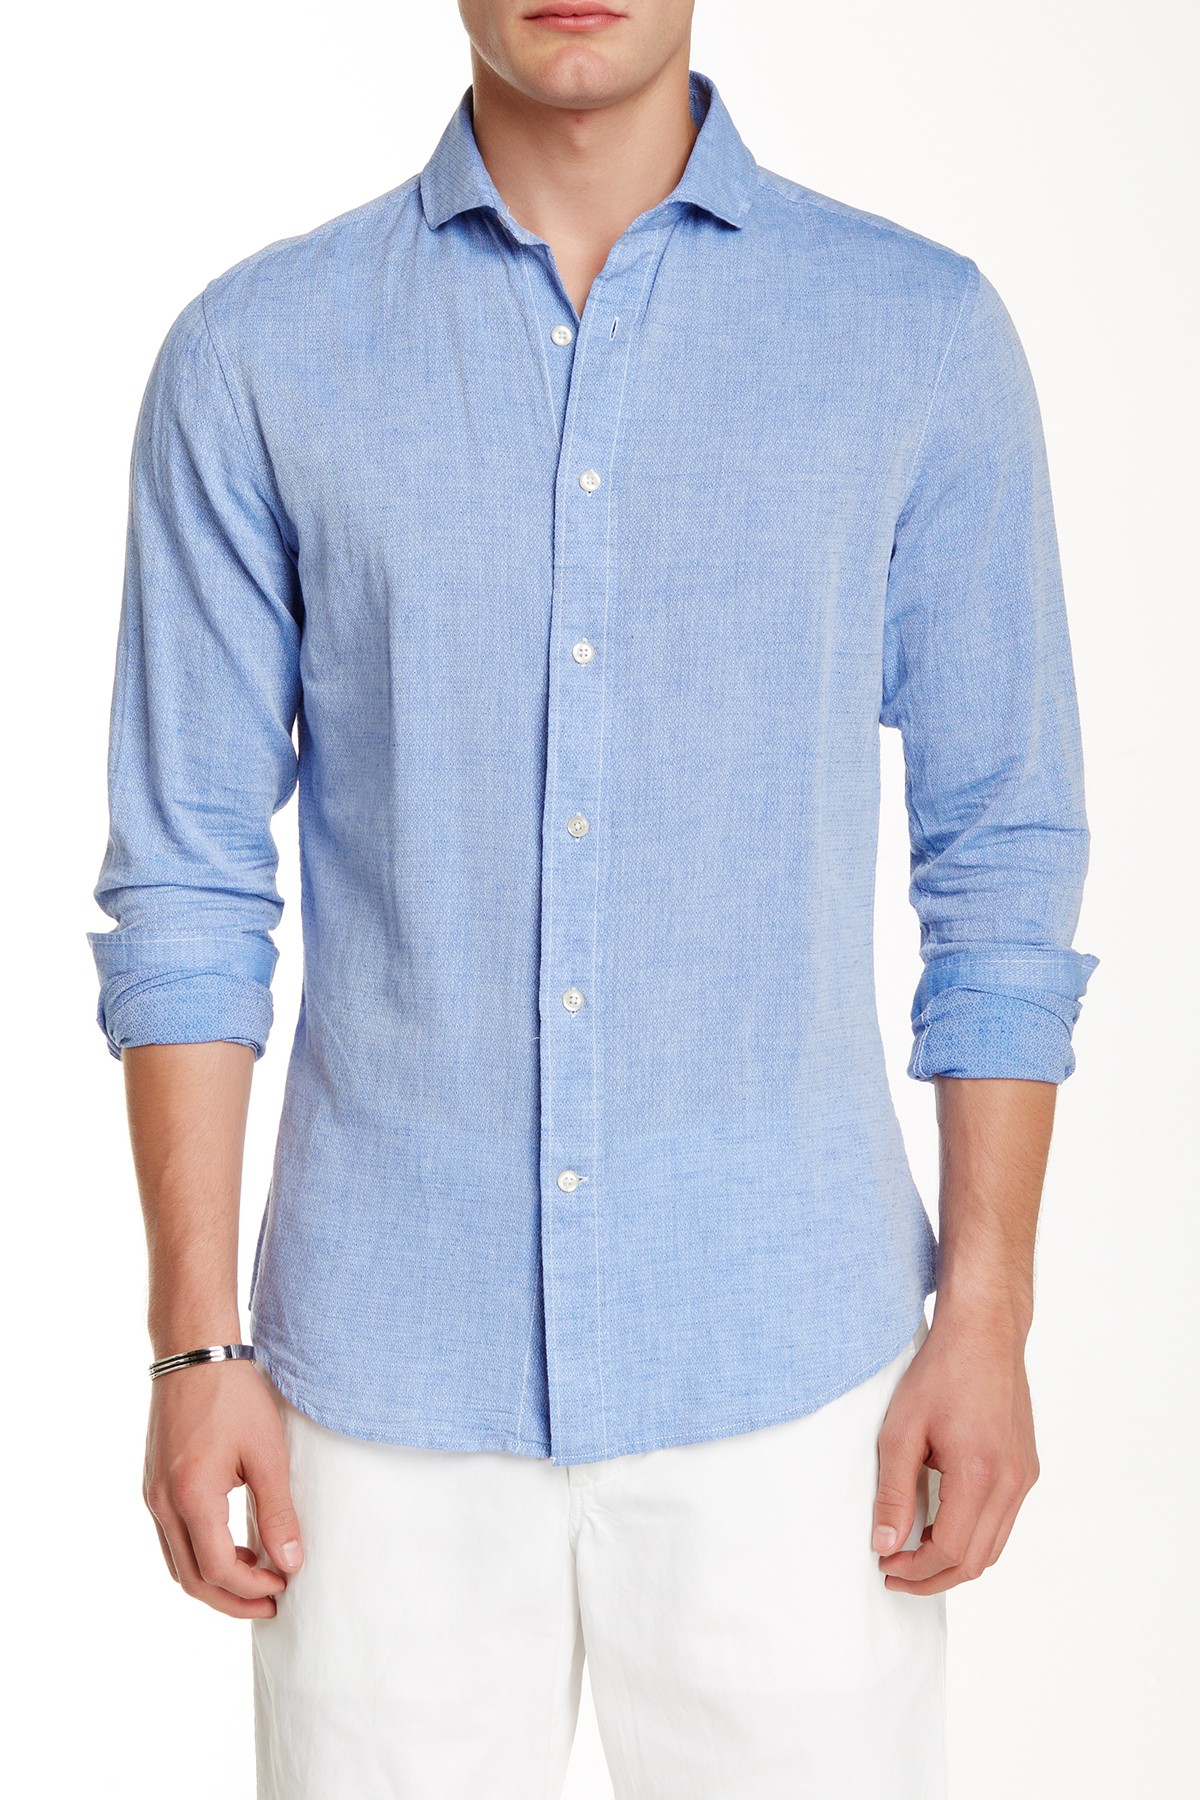 Slate And Stone Clothing : Slate stone trim fit long sleeve woven shirt in blue for